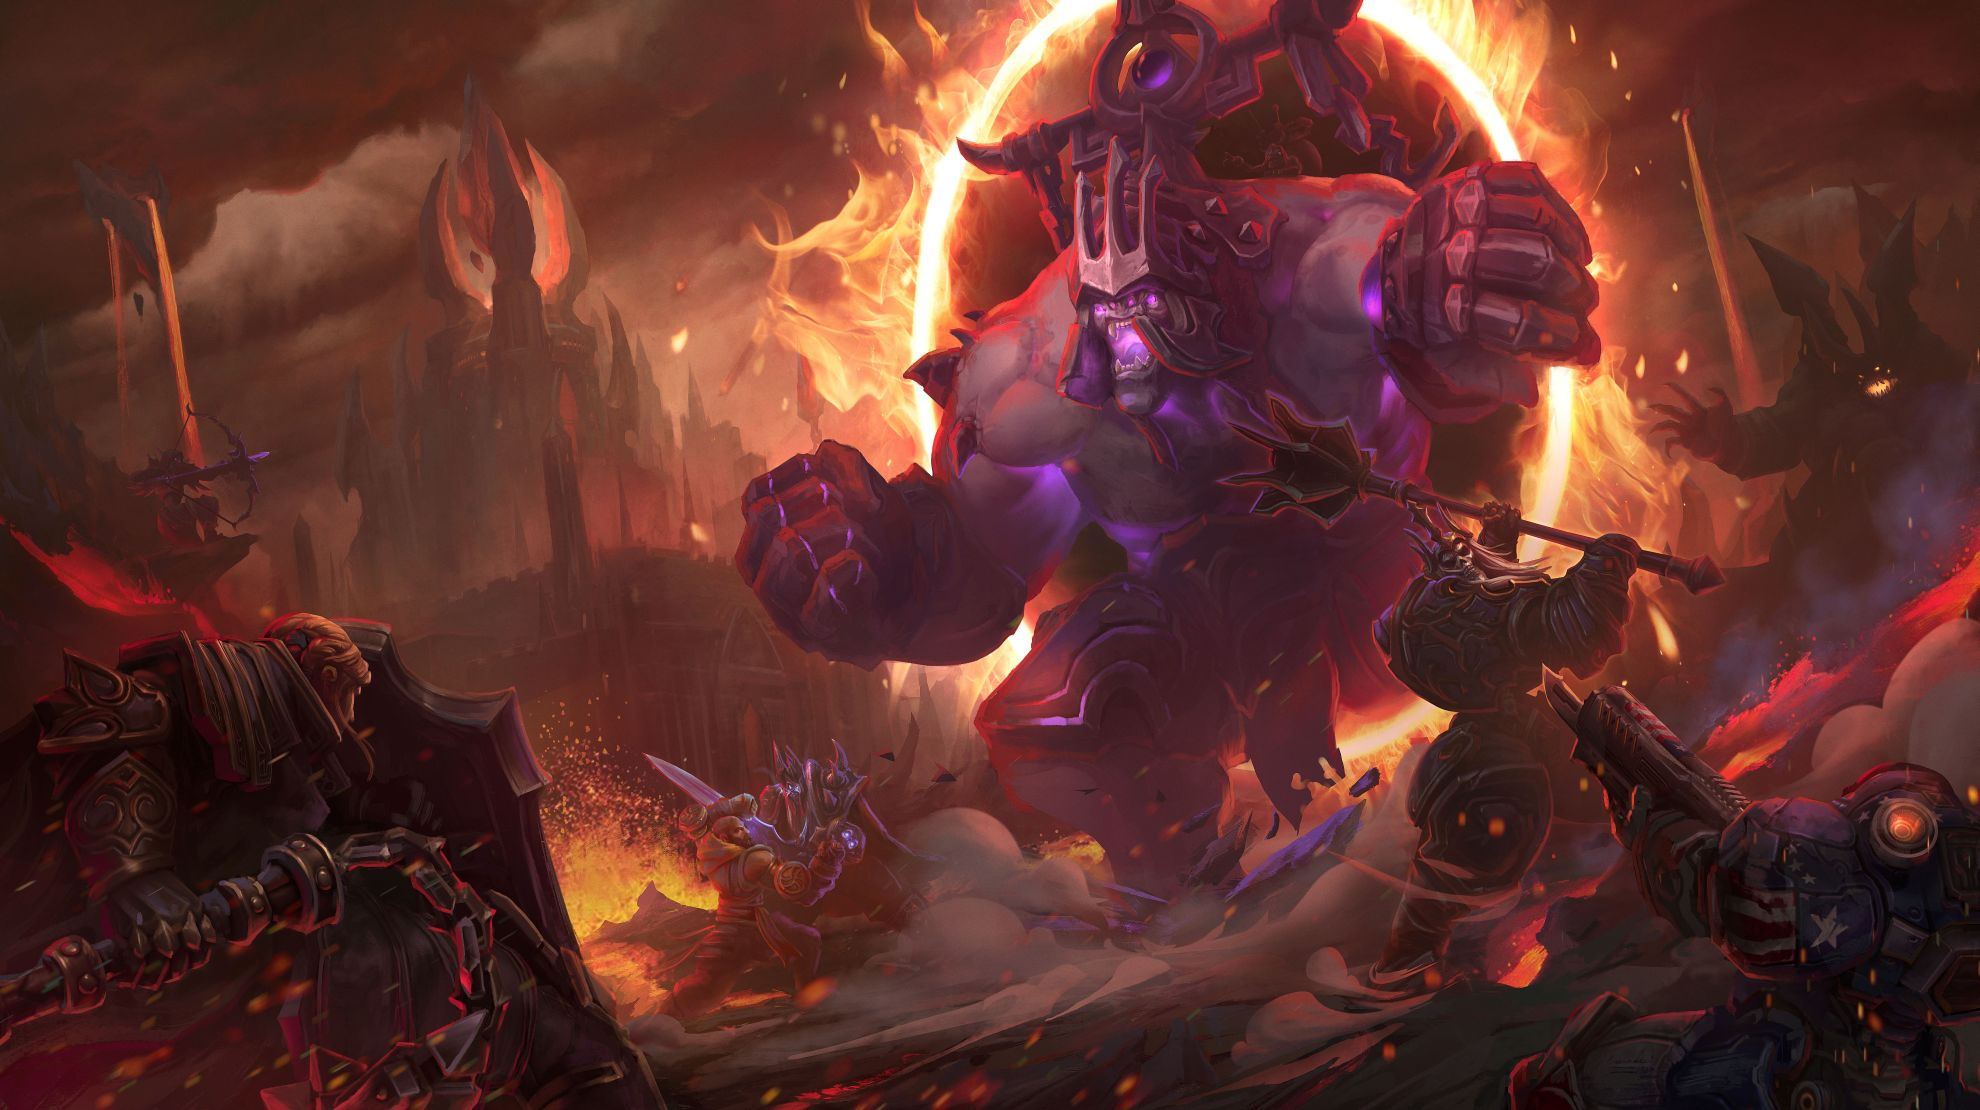 Rexxar And His Bear Misha Are Coming To Heroes Of The Storm With The Infernal Shrines